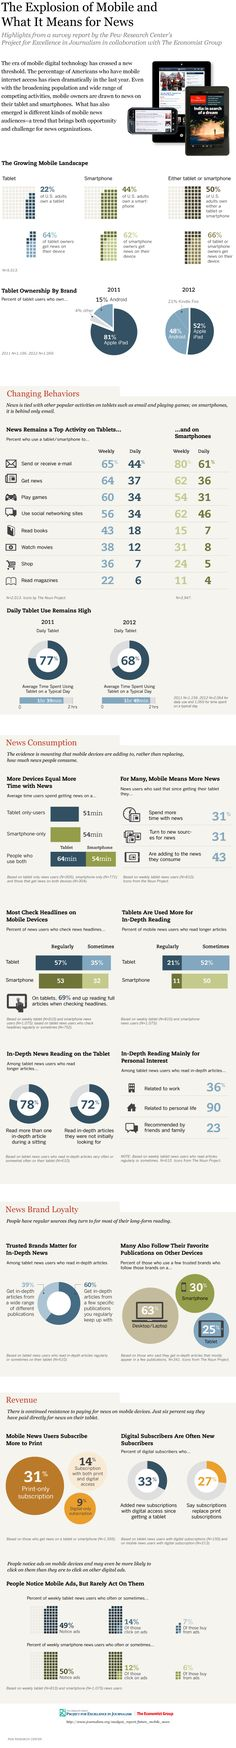 The Future of Mobile News